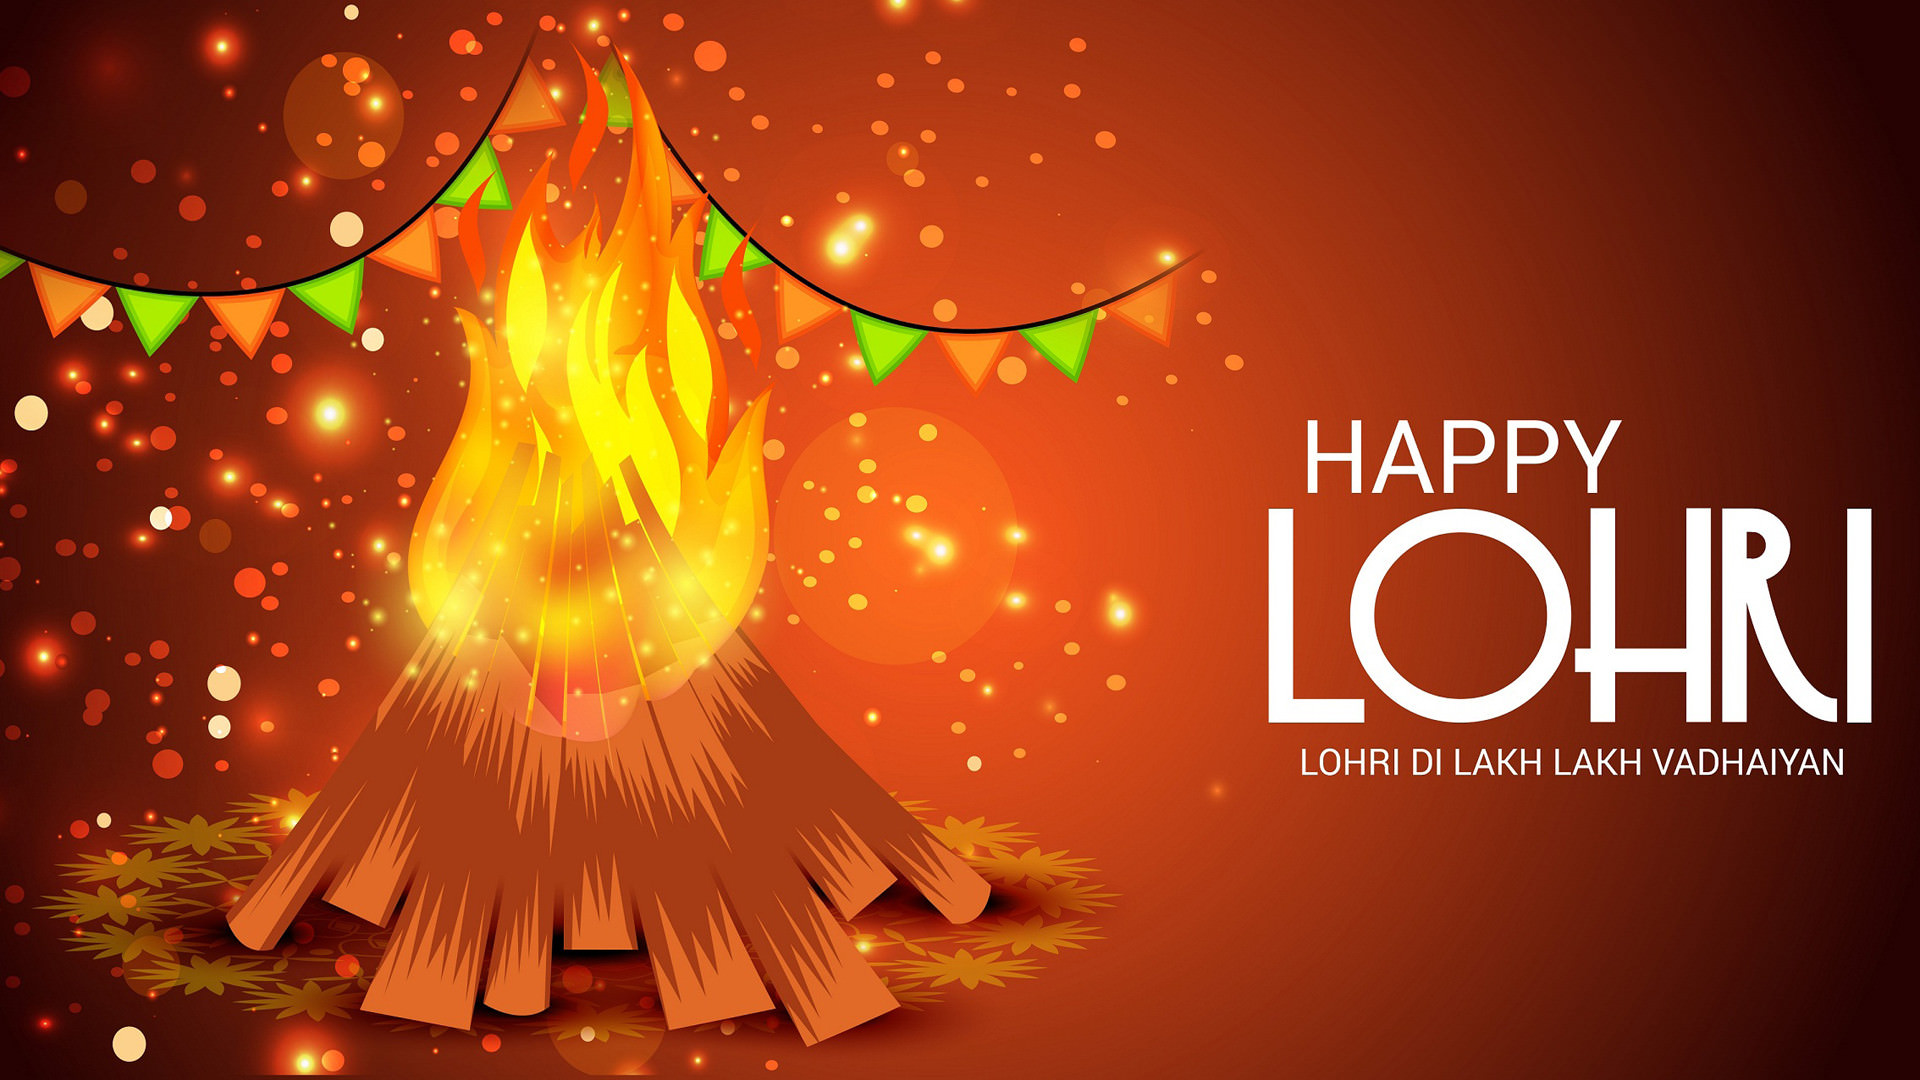 Happy Lohri Festival Wallpapers Free Download Wishes